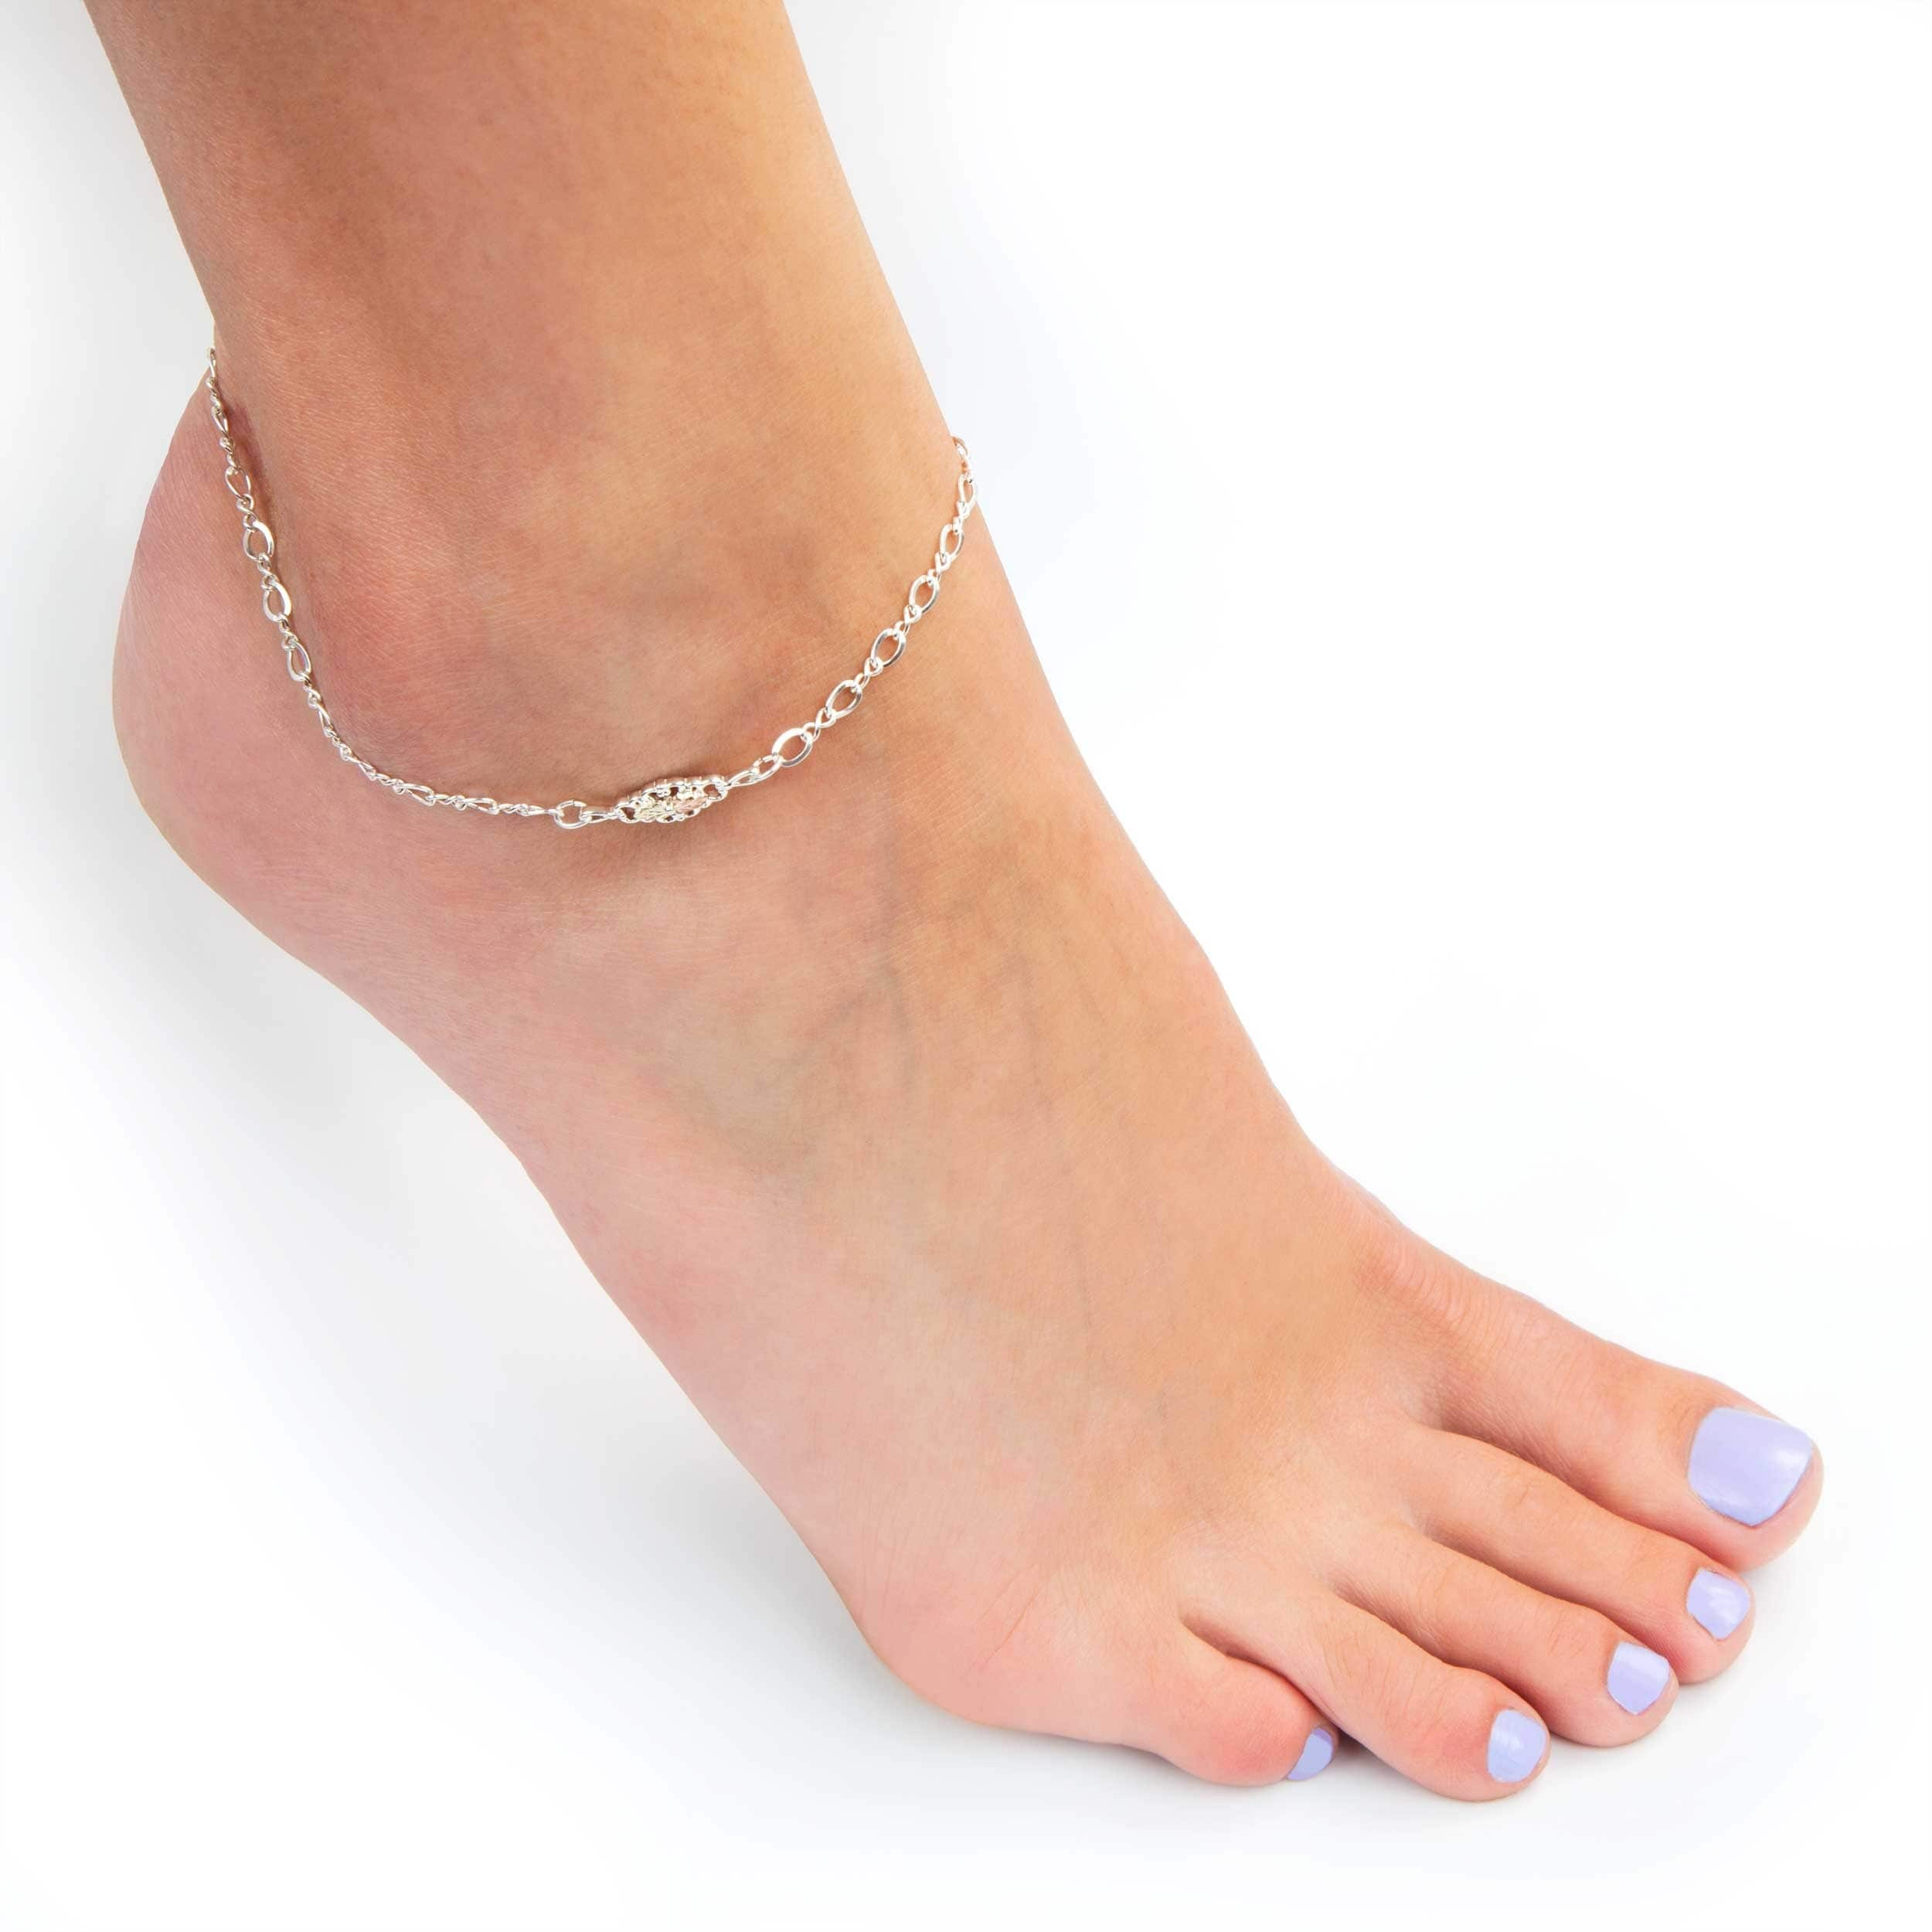 jewelry something bracelets sterling gift anklet wedding chain body ankle bridal blue turquoise beach silver il bracelet boho friendship listing fullxfull